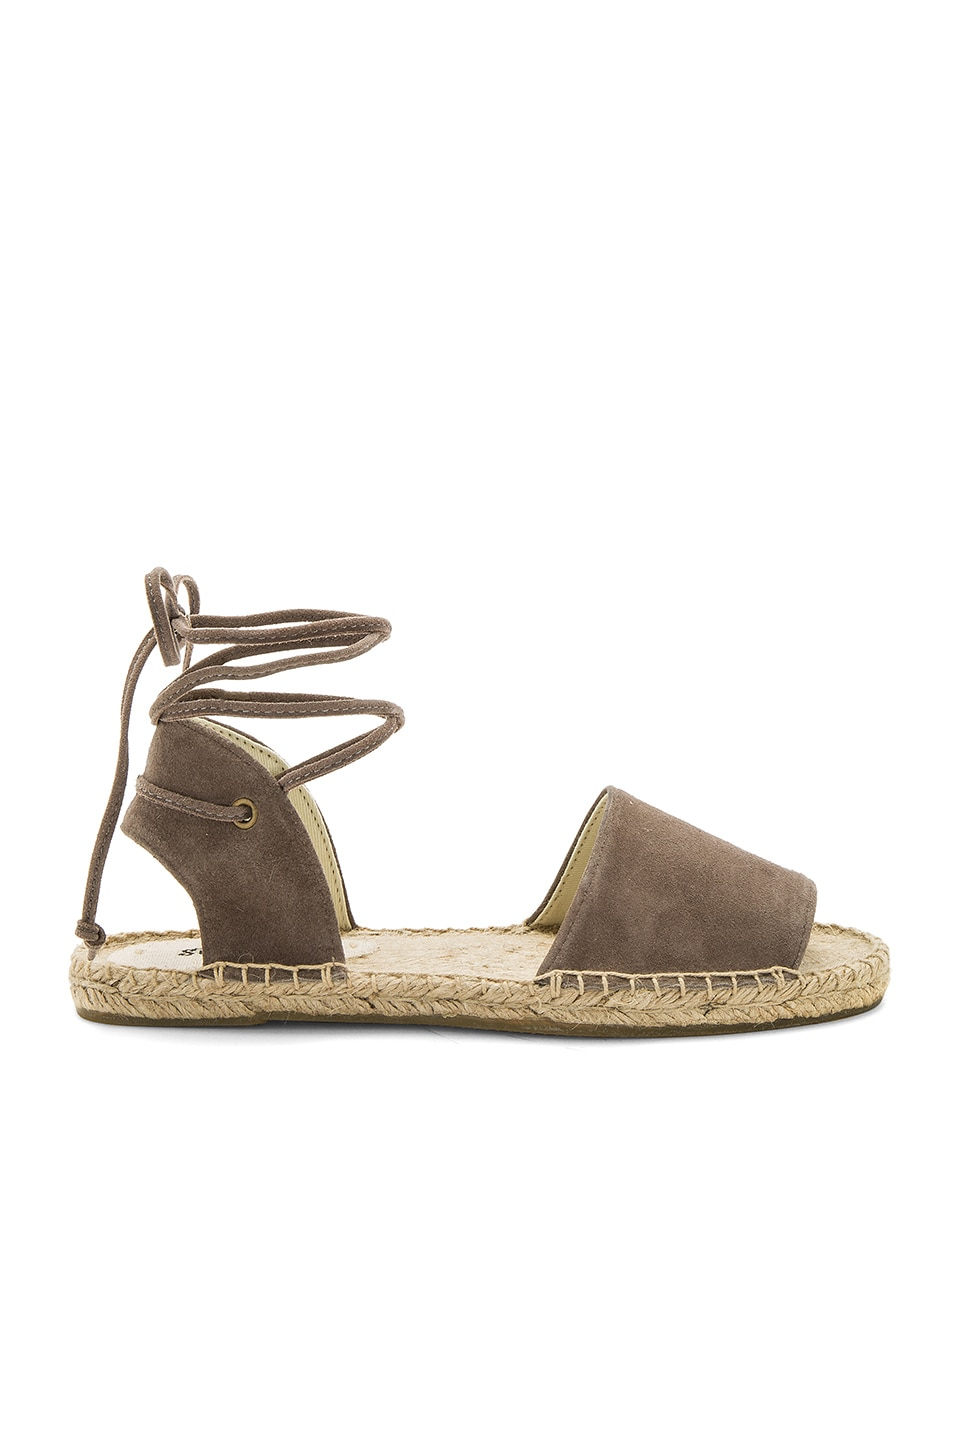 Soludos Balearic Tie Up Sandal in Dove Gray